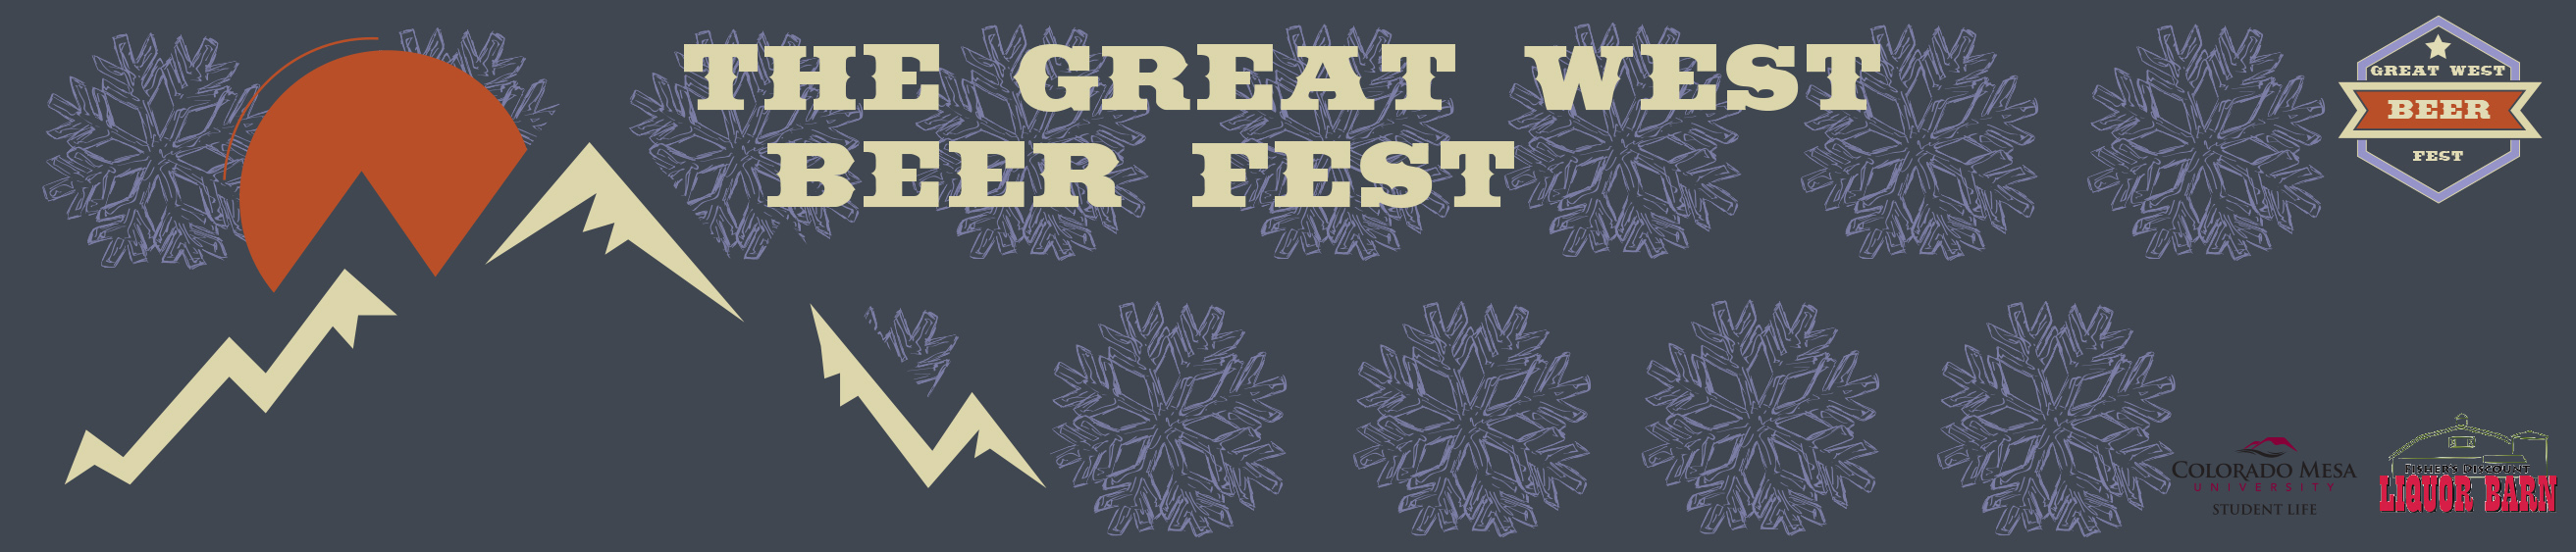 great west beer fest 2016